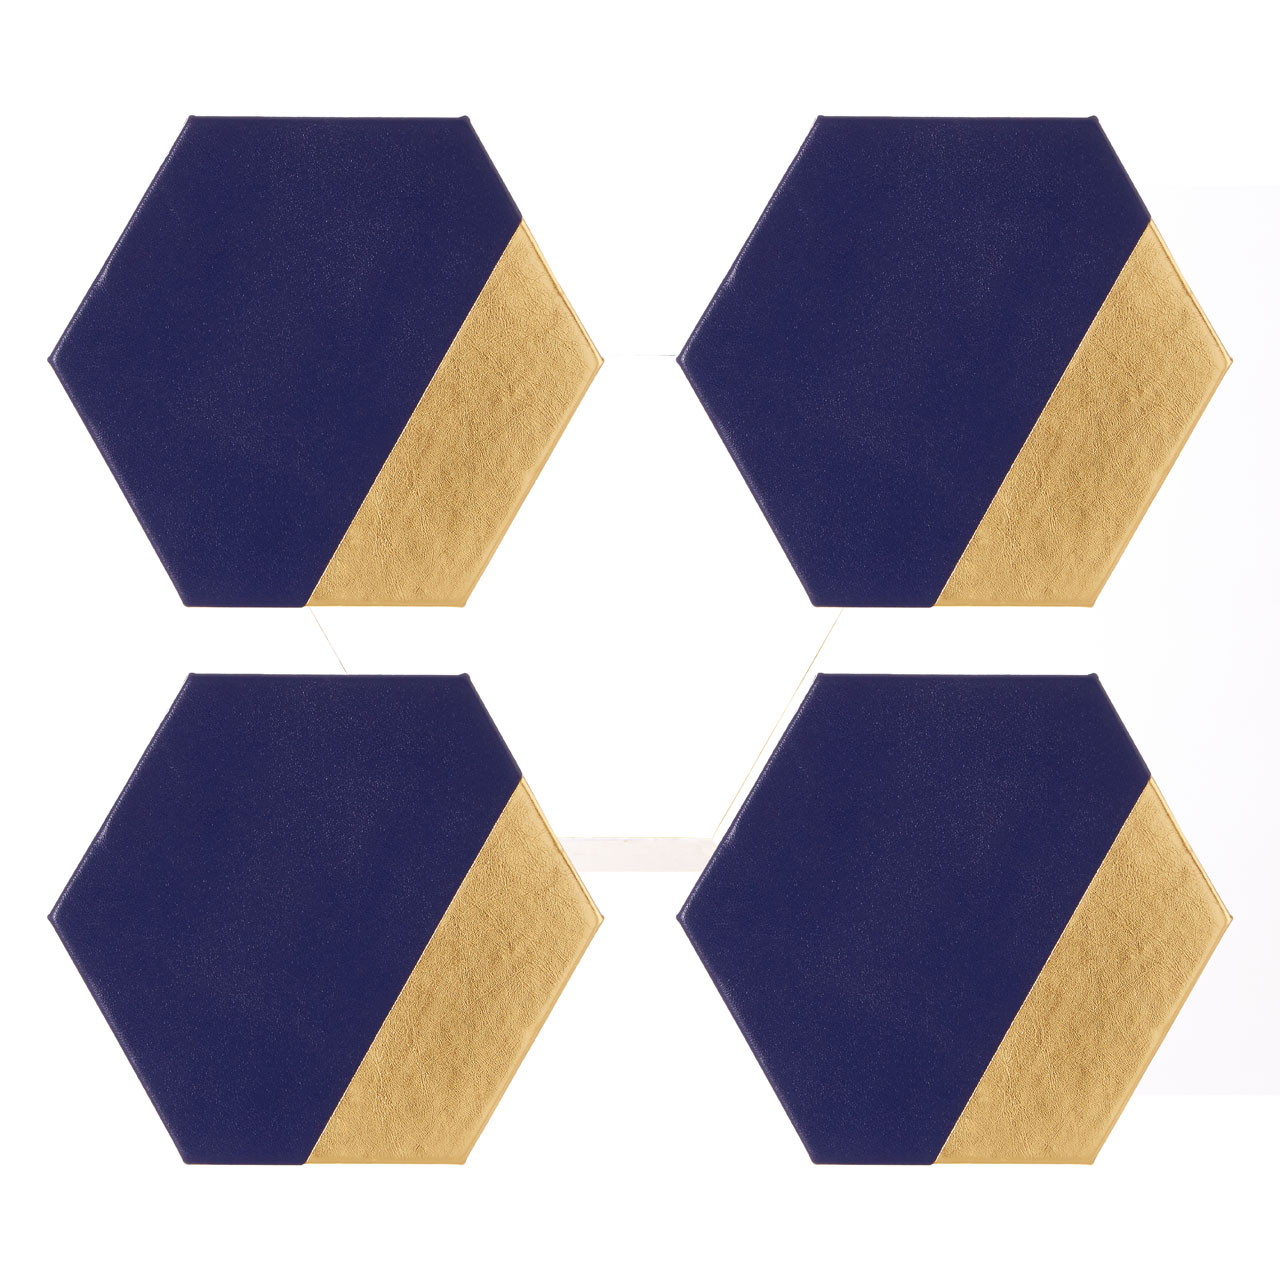 959e5f201 Geome Dipped Hexagonal Coaster Navy Gold Set of 4 Drink Table Mat ...